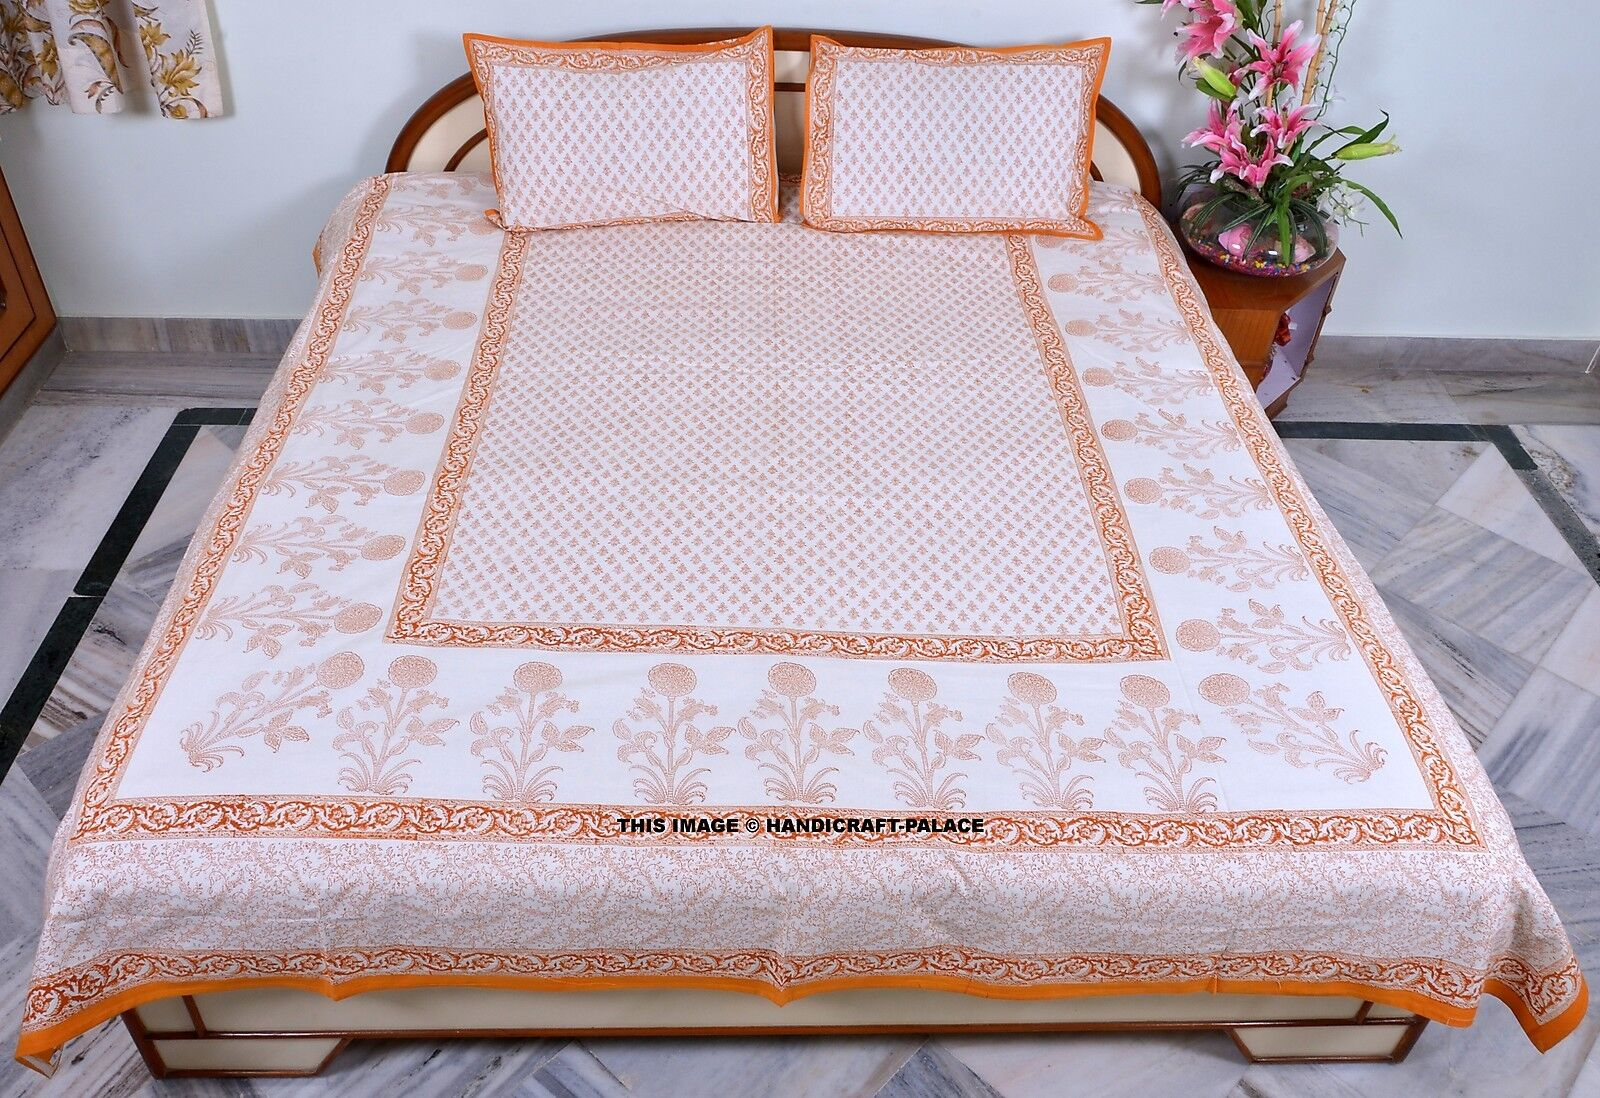 Indian Floral Print Queen Bedsheet Bed Cover Cotton Throw Ethnic Bed Decor Set